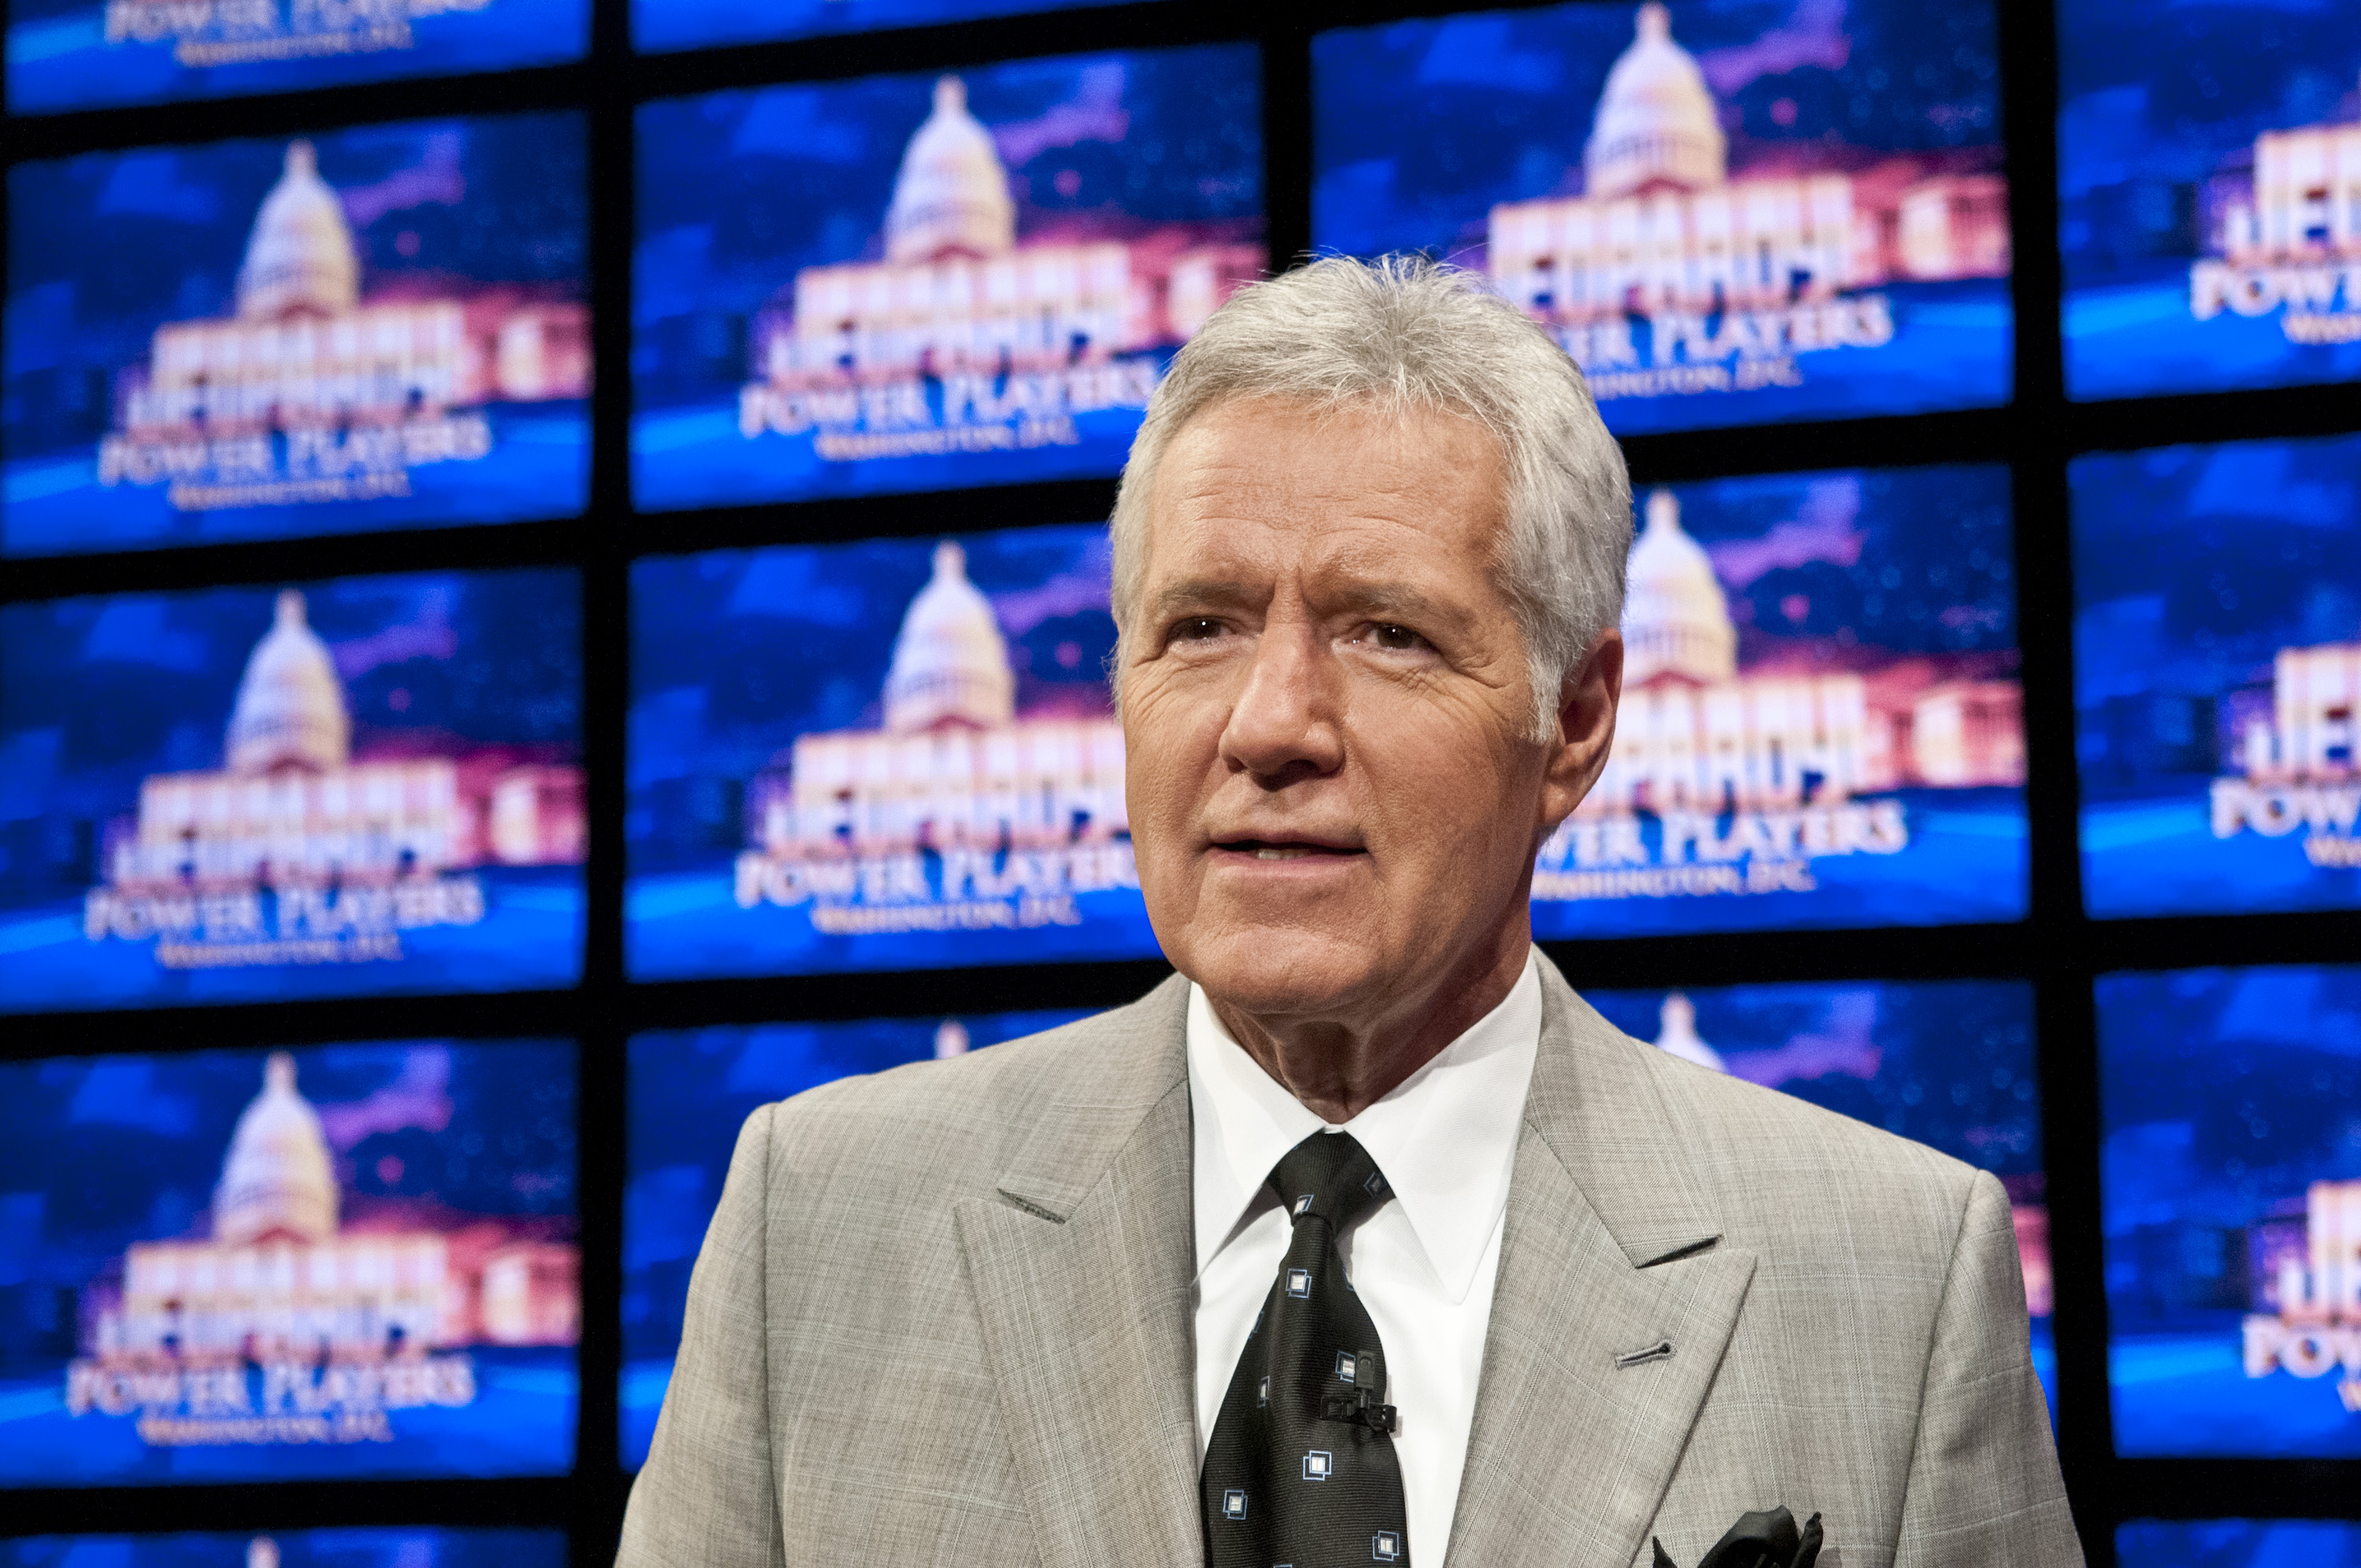 'Jeopardy!' host Alex Trebek thanks supporters following cancer announcement